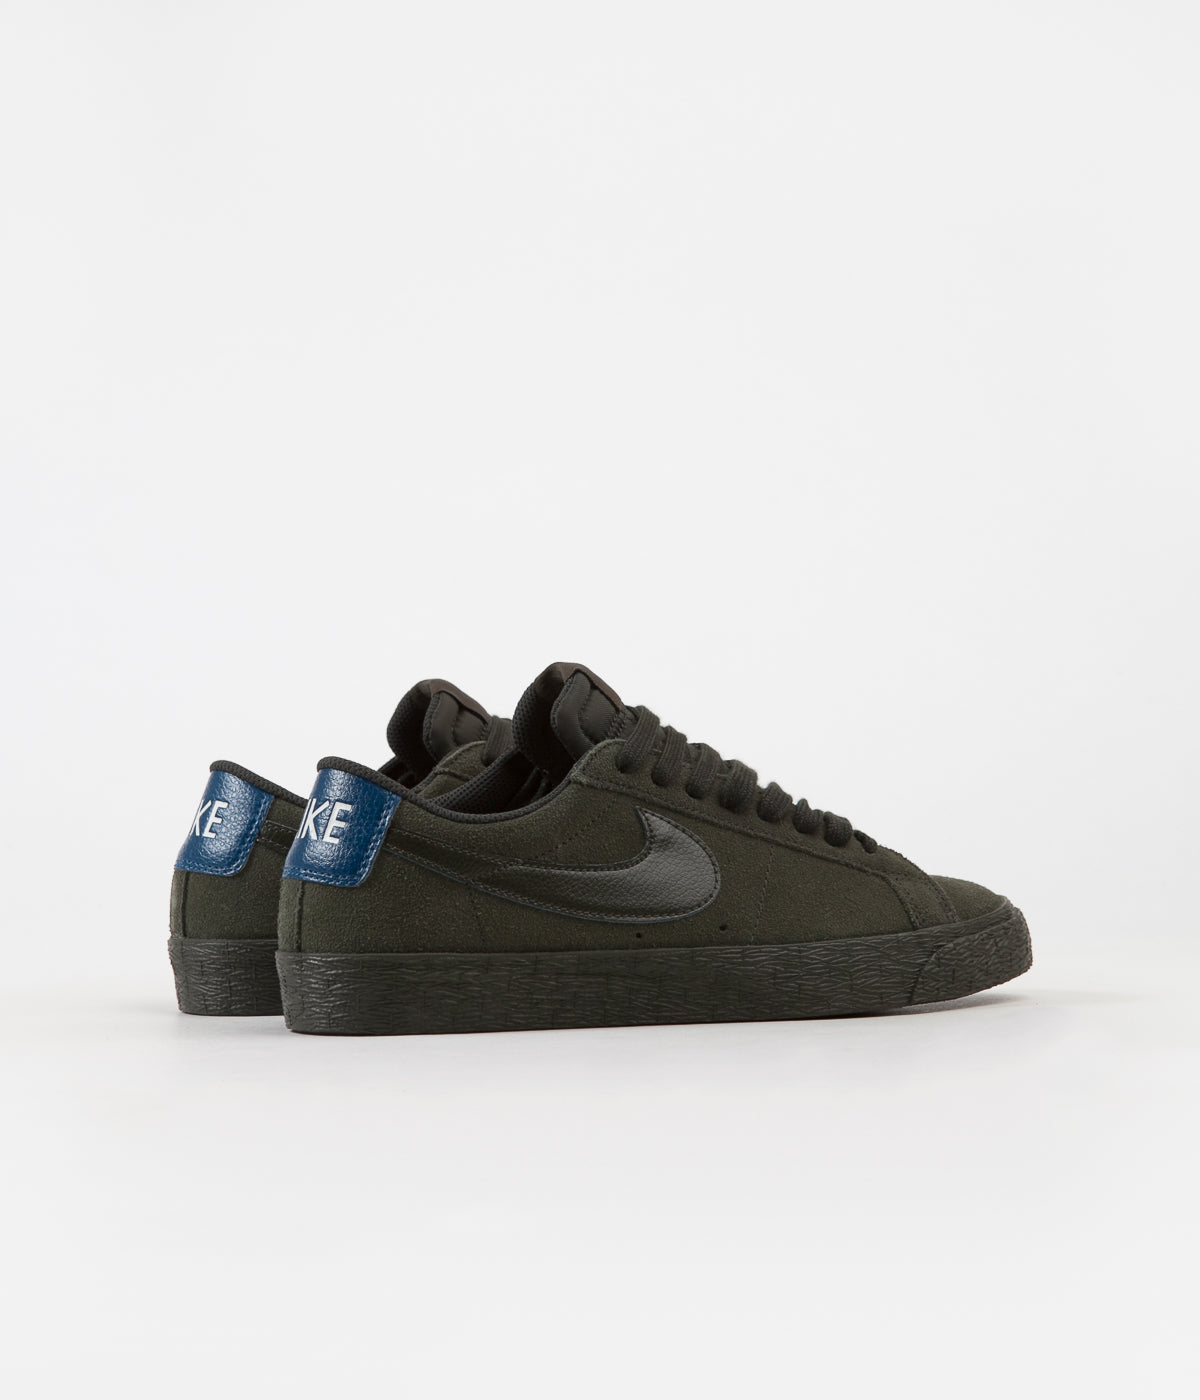 0f72fca8a72b ... Nike SB Blazer Low Shoes - Sequoia   Sequoia - Blue Force ...